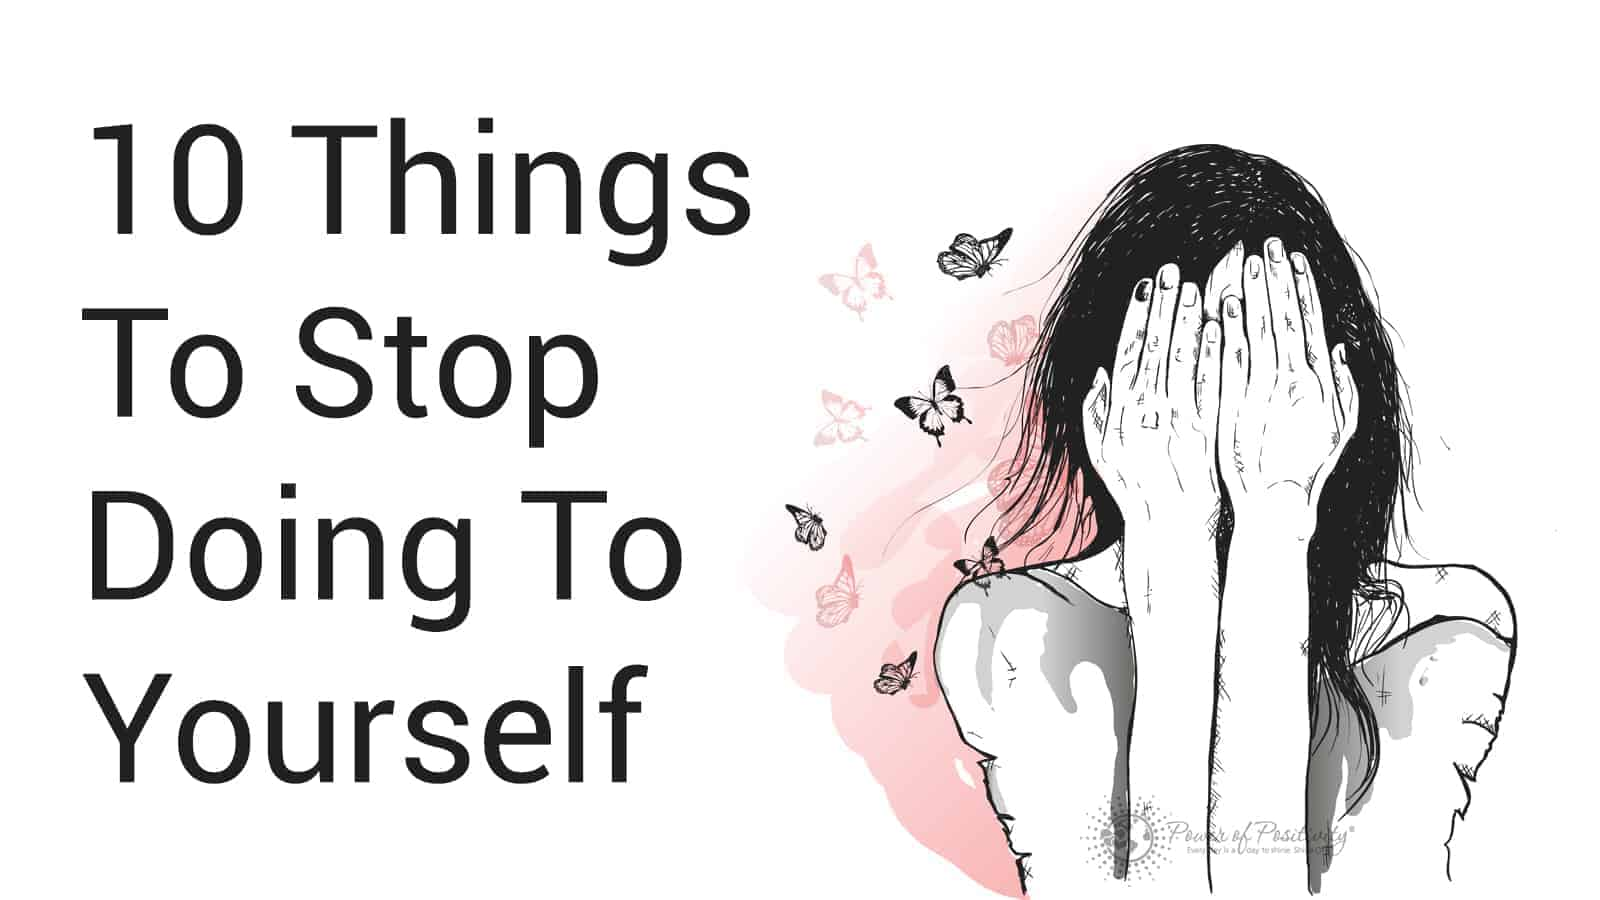 doing to yourself